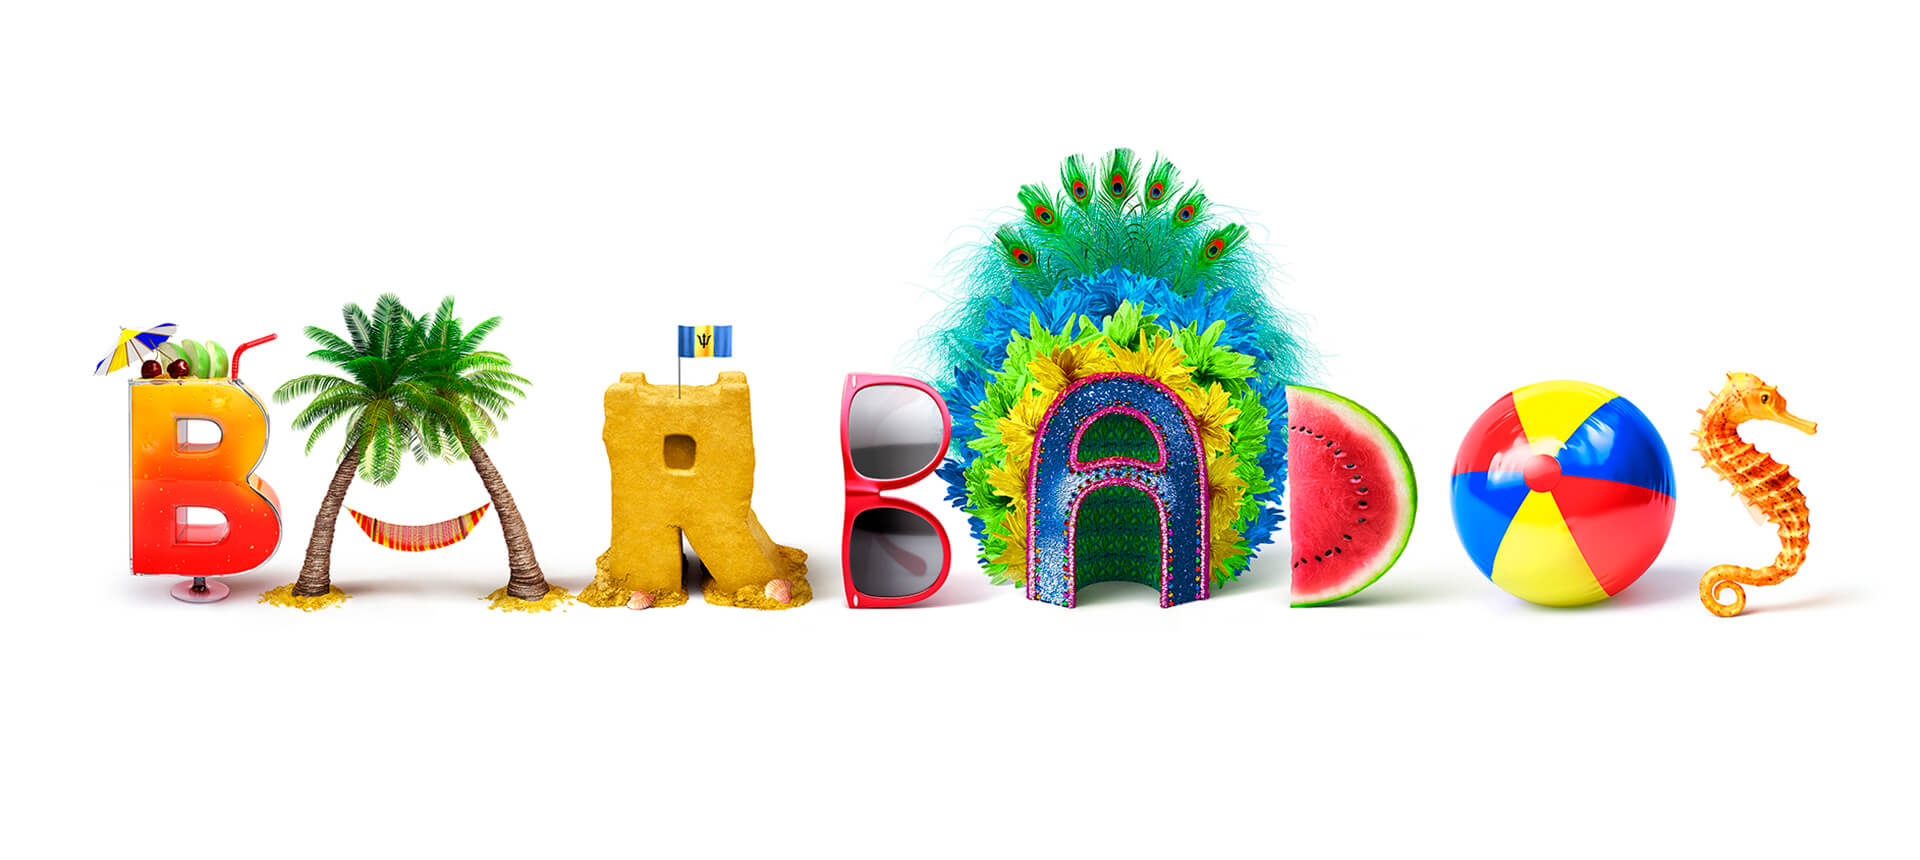 fun playful 3d model of the word barbados, cg modelled letters rendered in softimage